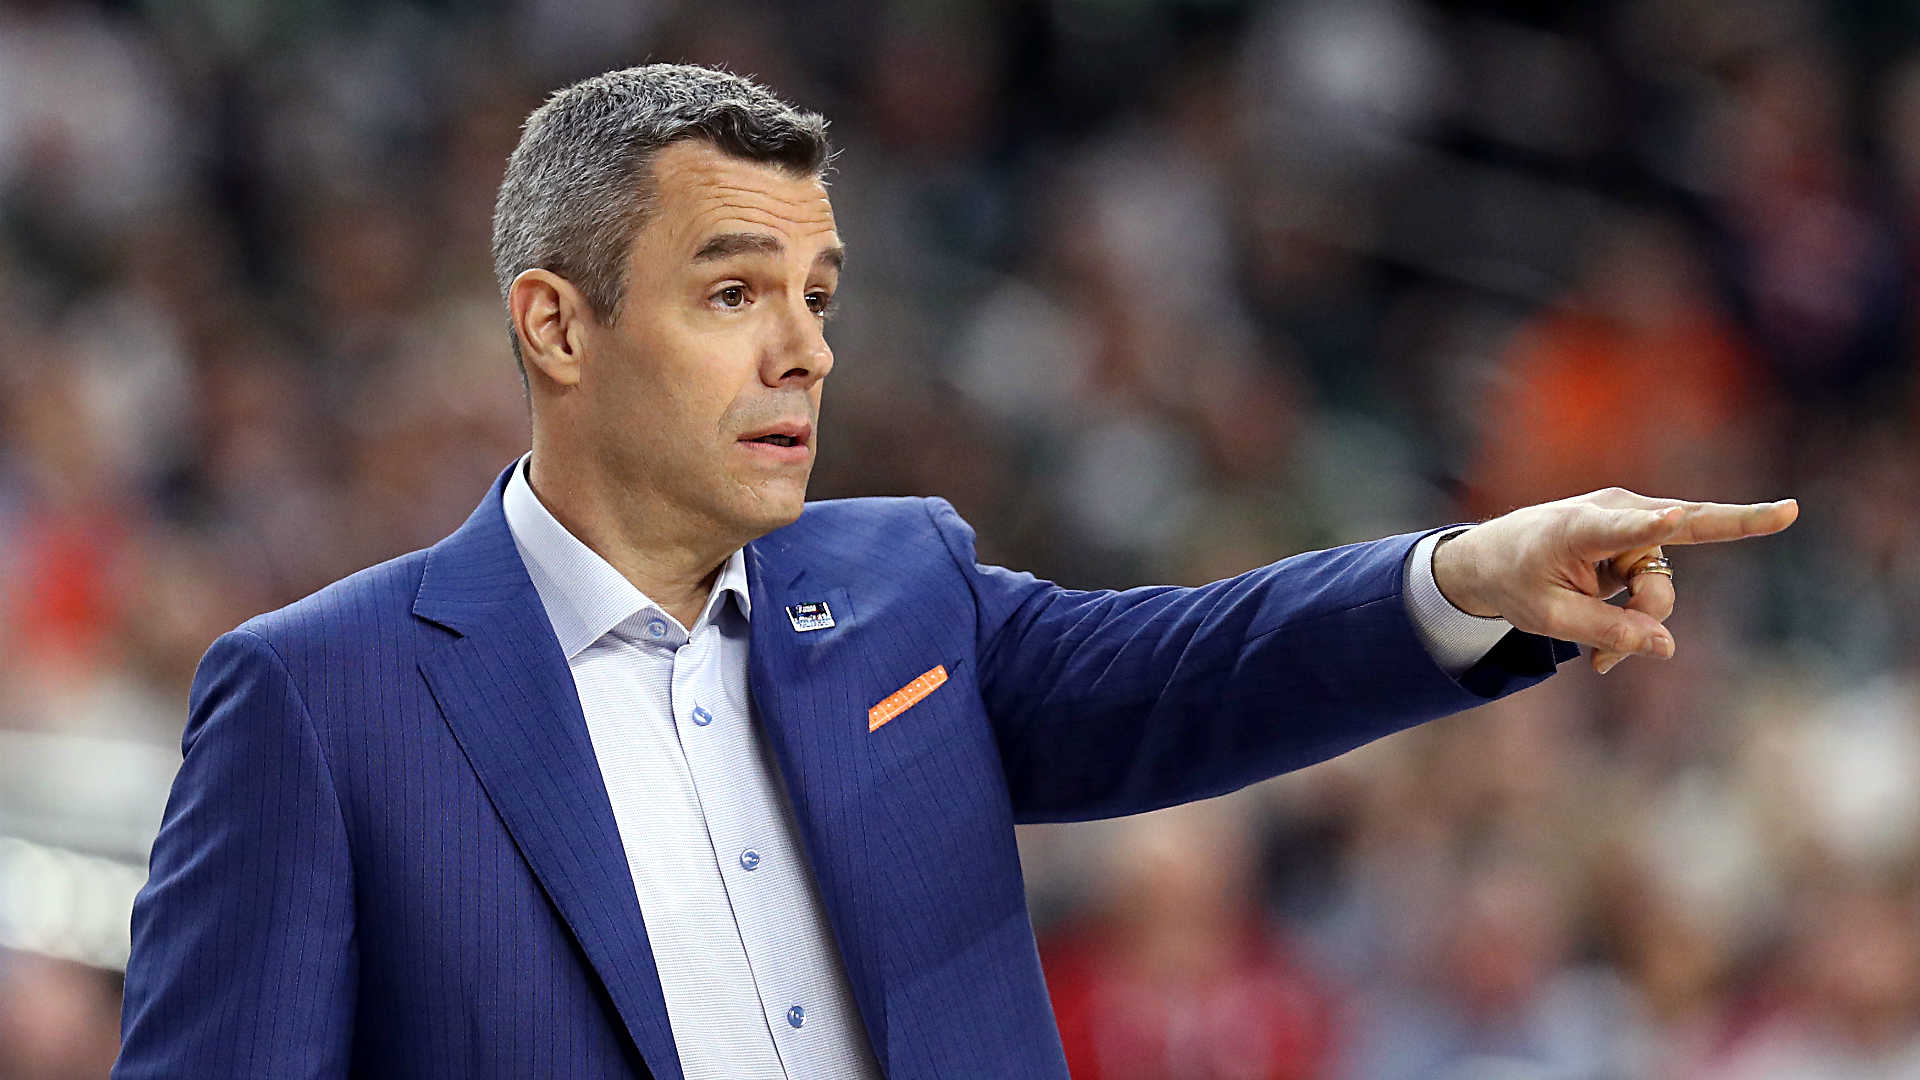 Reaction to Tony Bennett's generosity is another low for discussion around paying college athletes